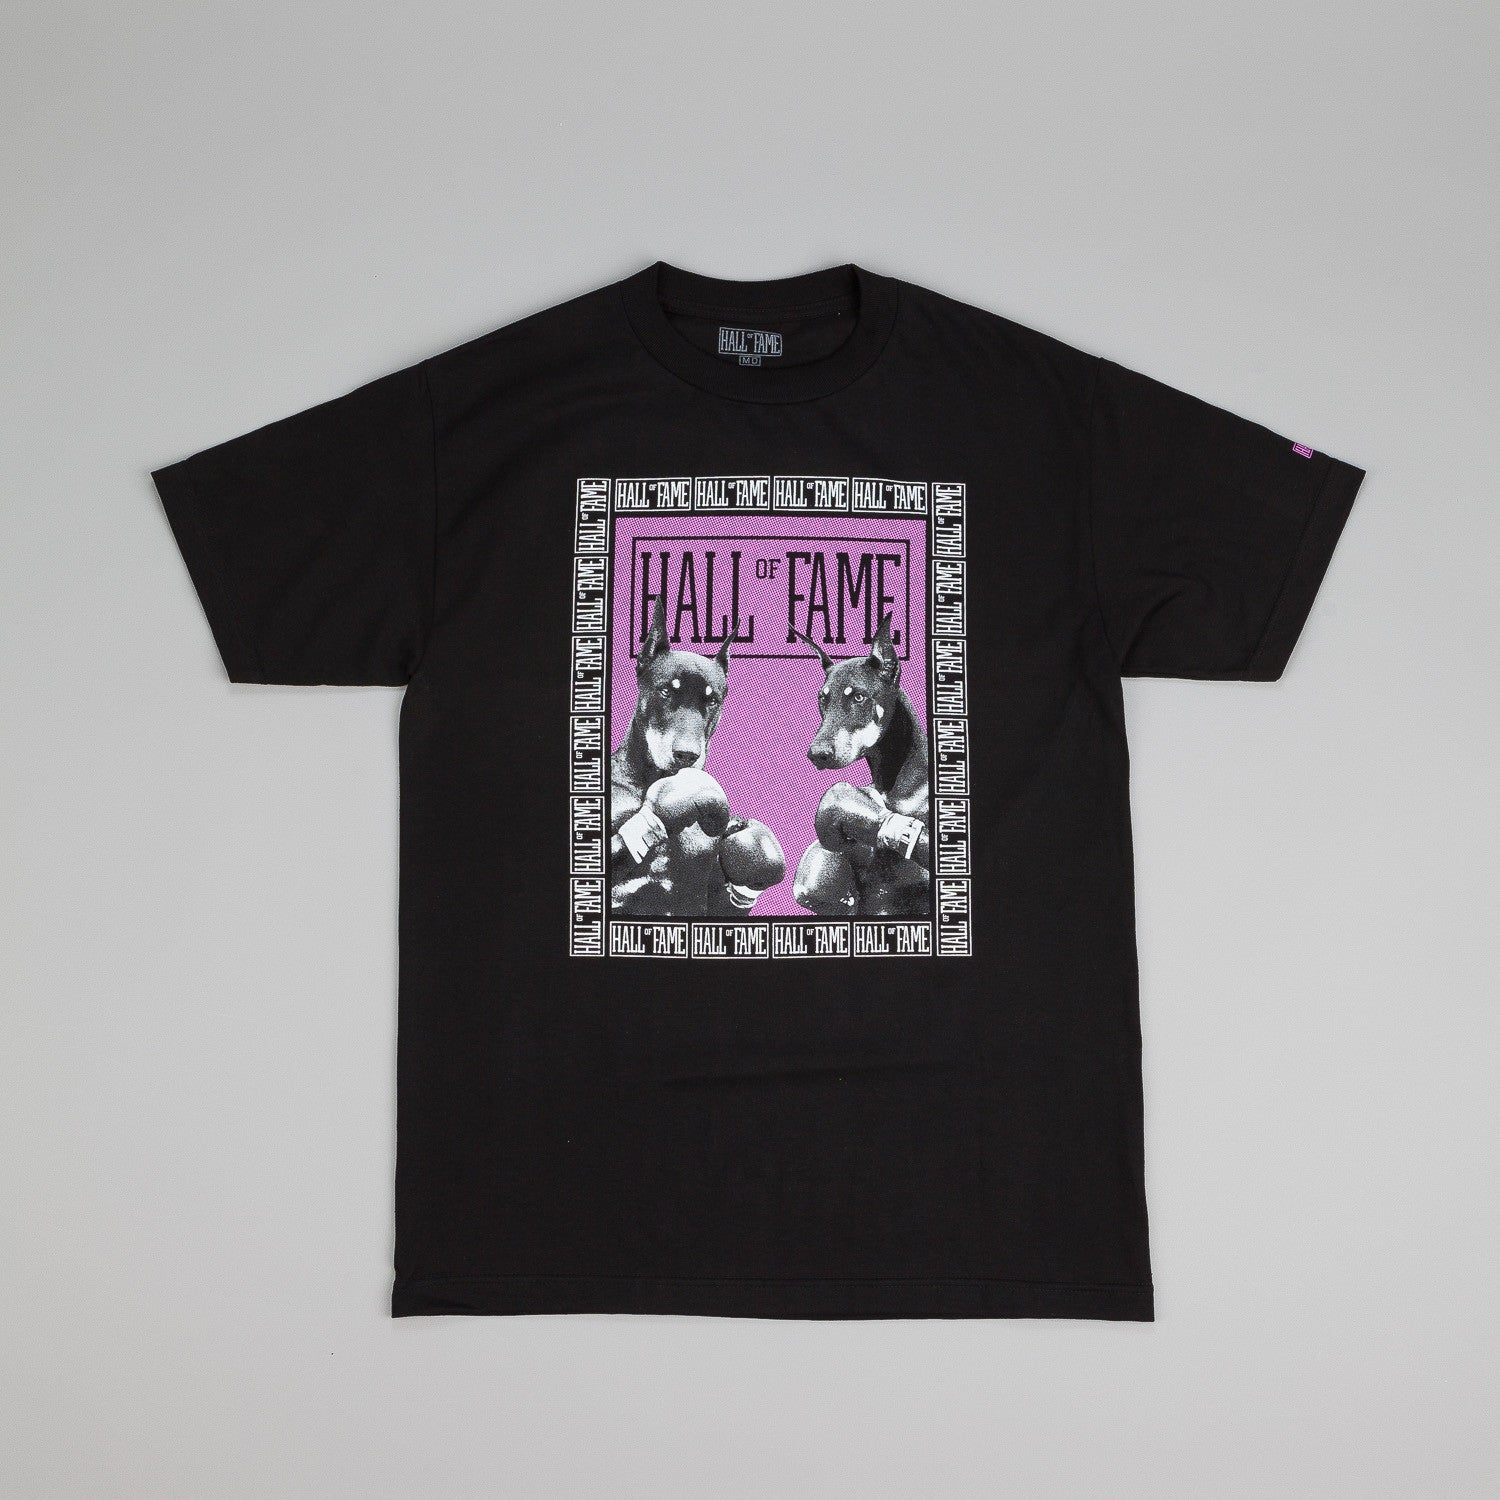 Hall of Fame Contenders T Shirt Black